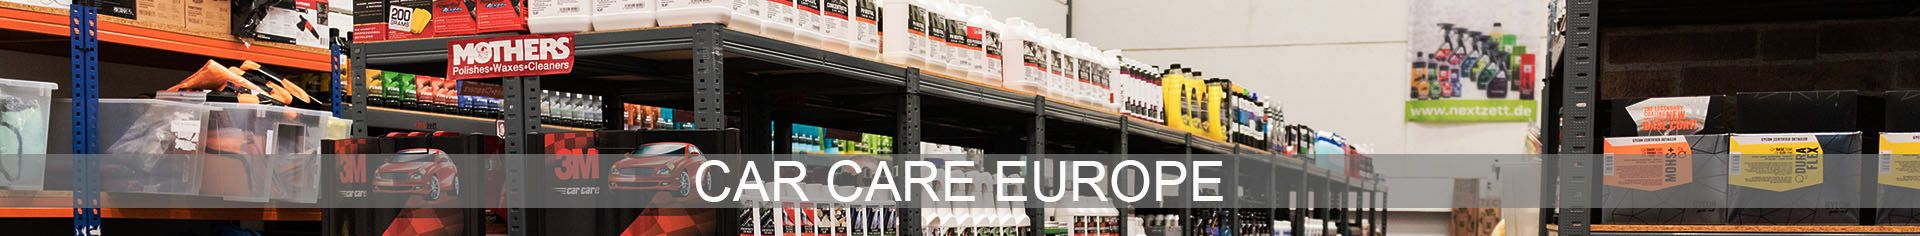 Quienes Somos Car Care Europe